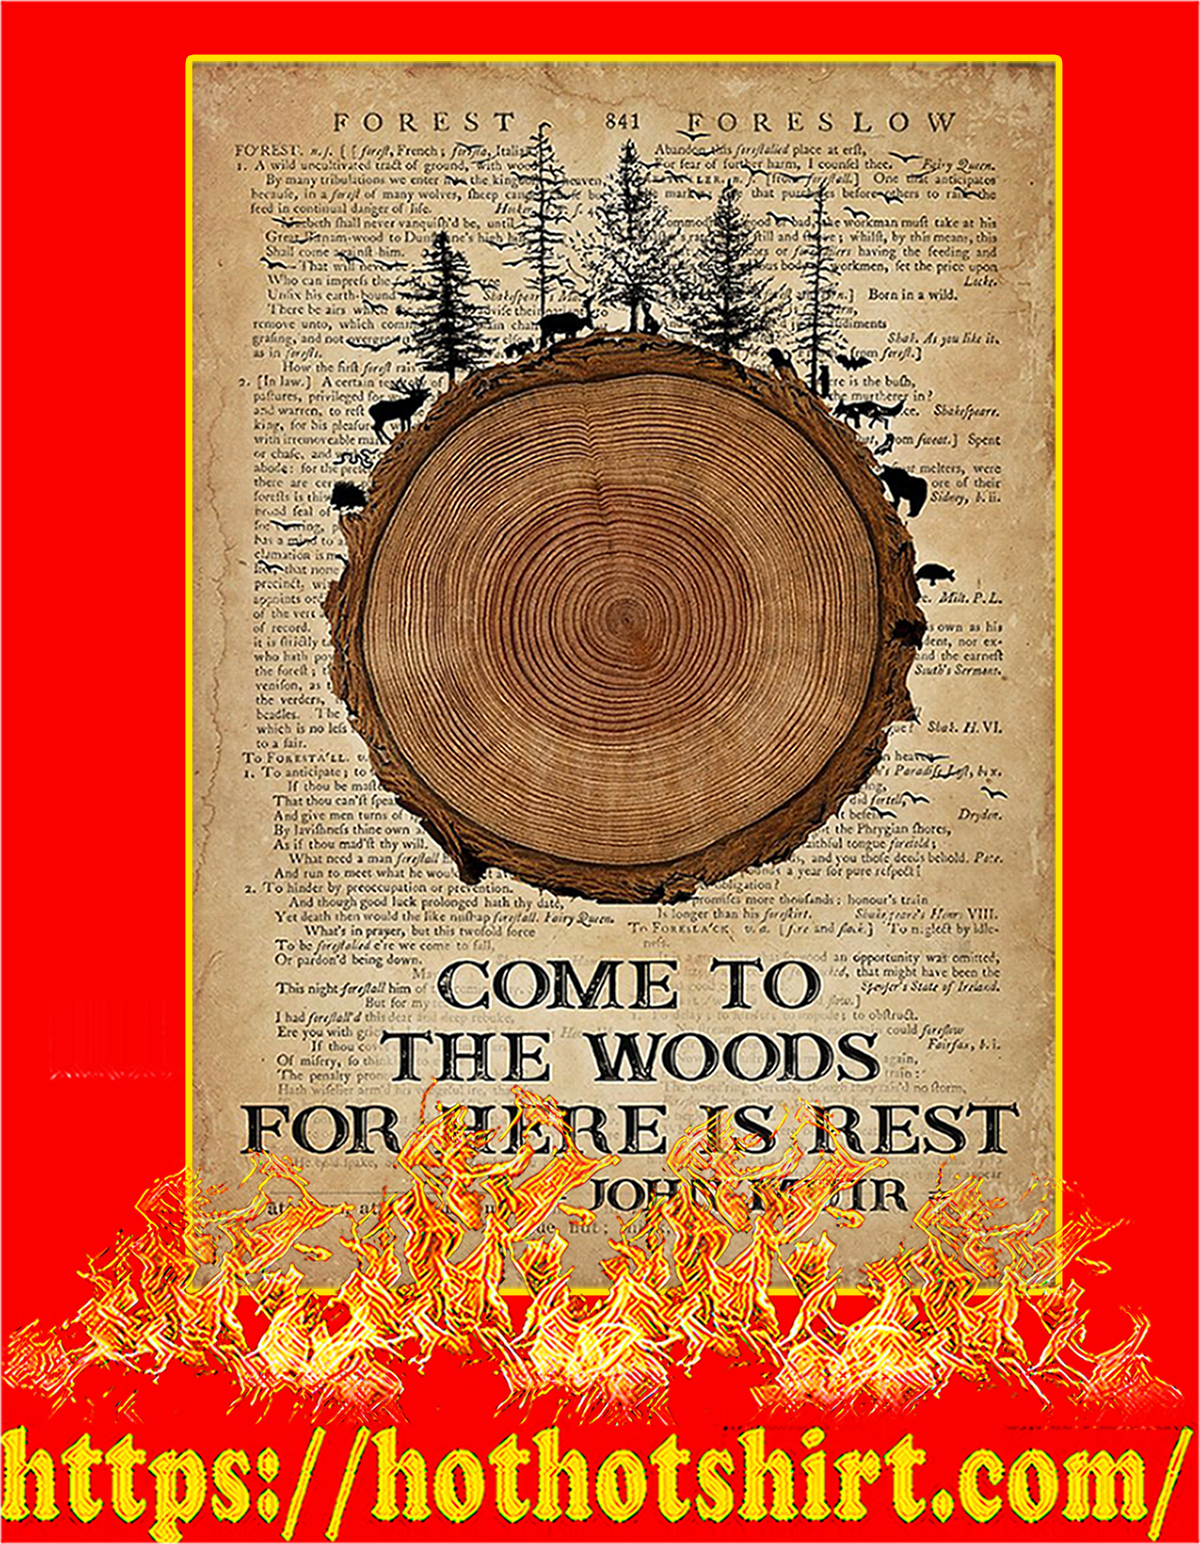 Come to the woods for here is rest poster - A2